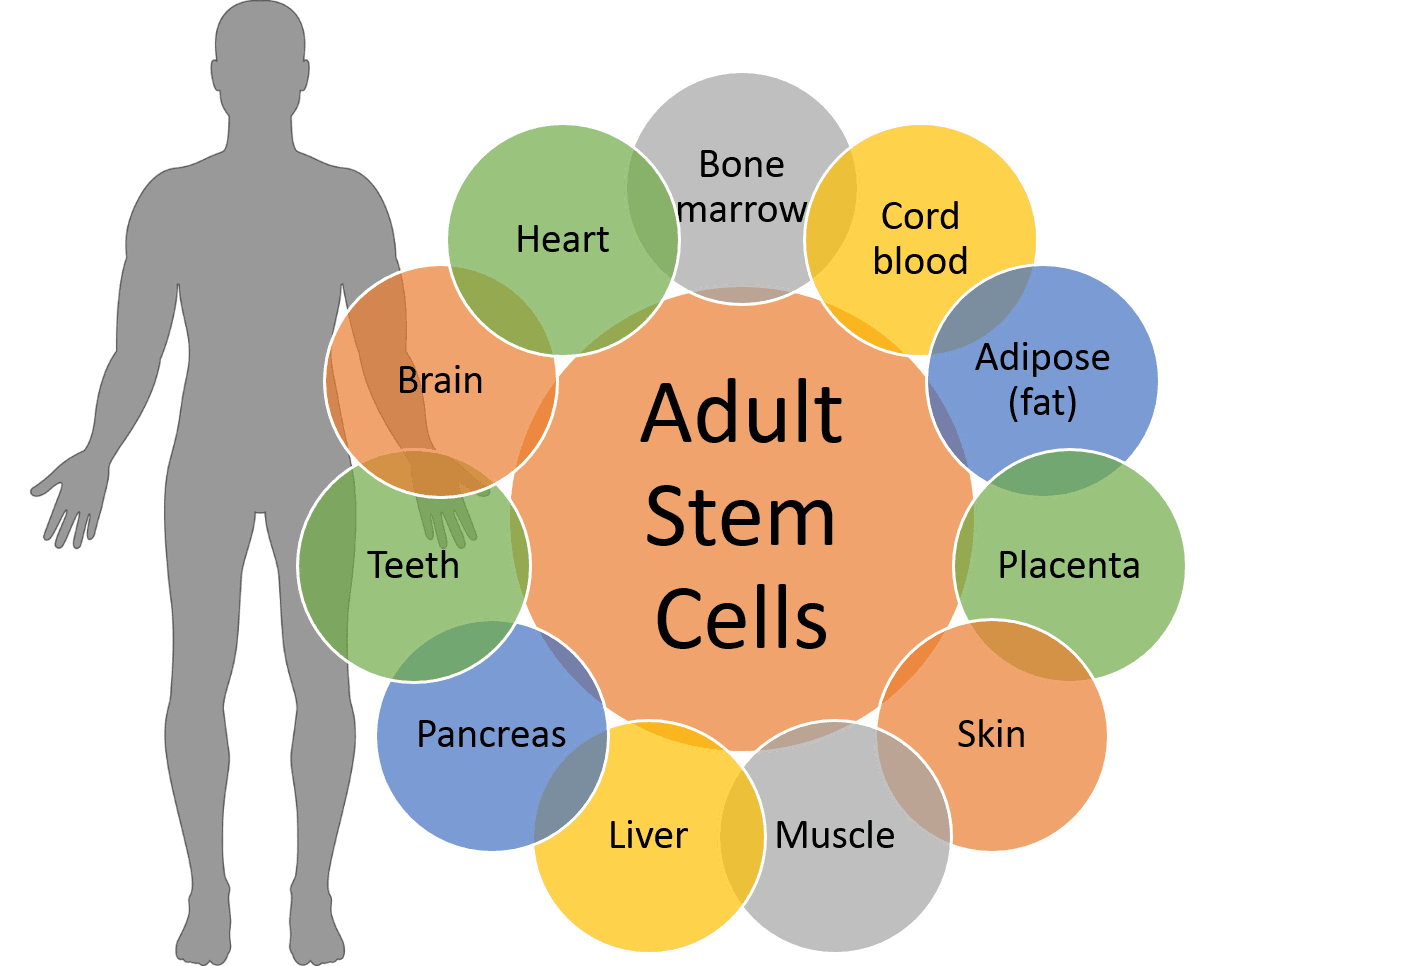 Discussion brain stem cells in adults